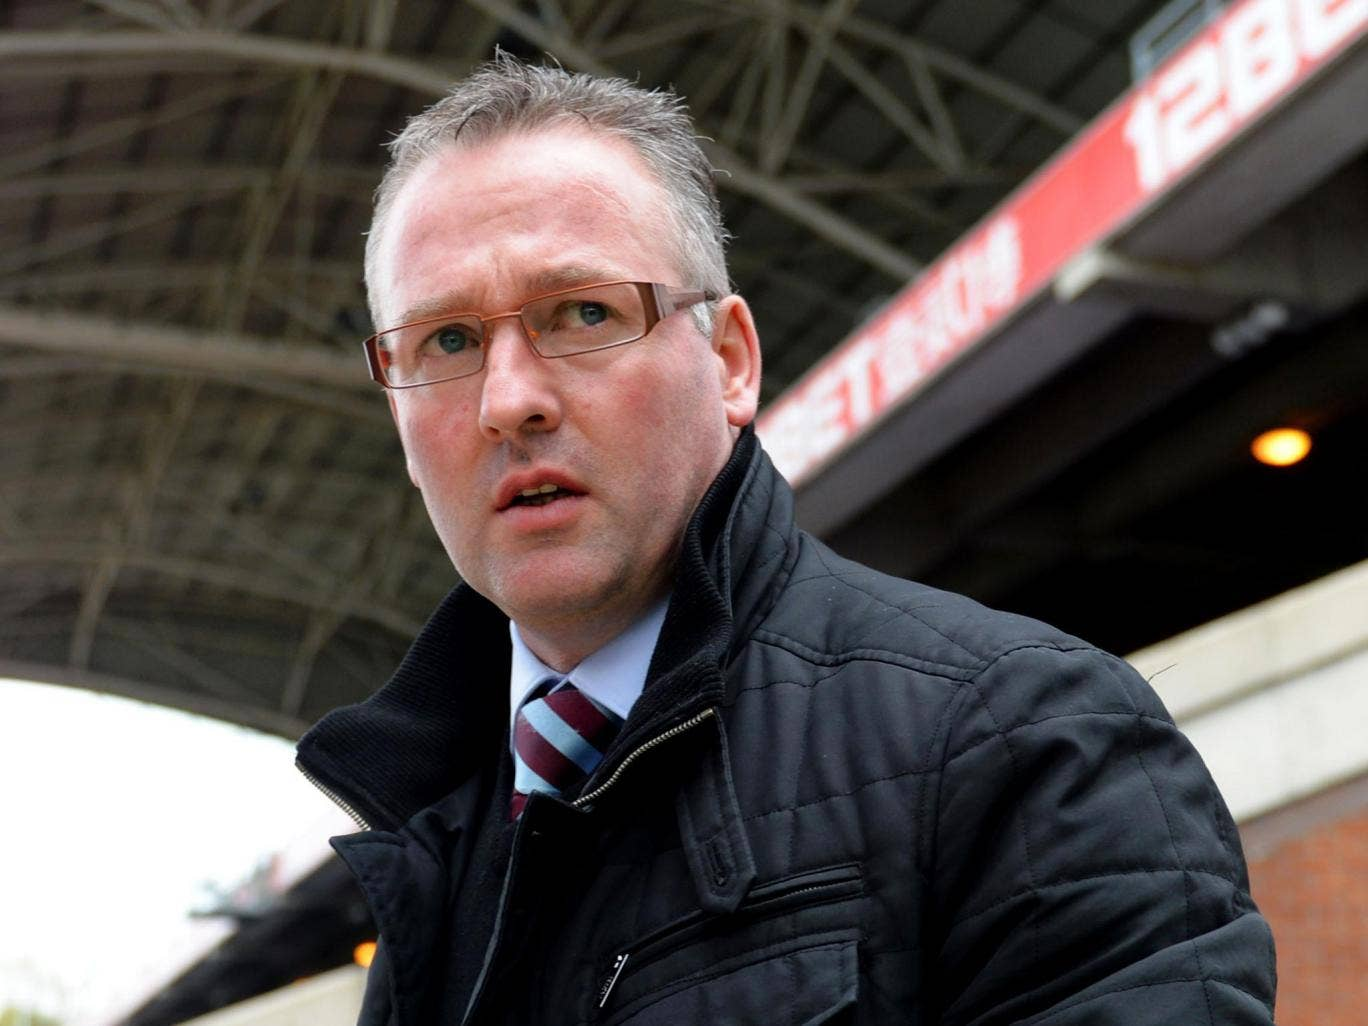 Paul Lambert admitted a win tomorrow would not make up for the upheaval at Villa this week